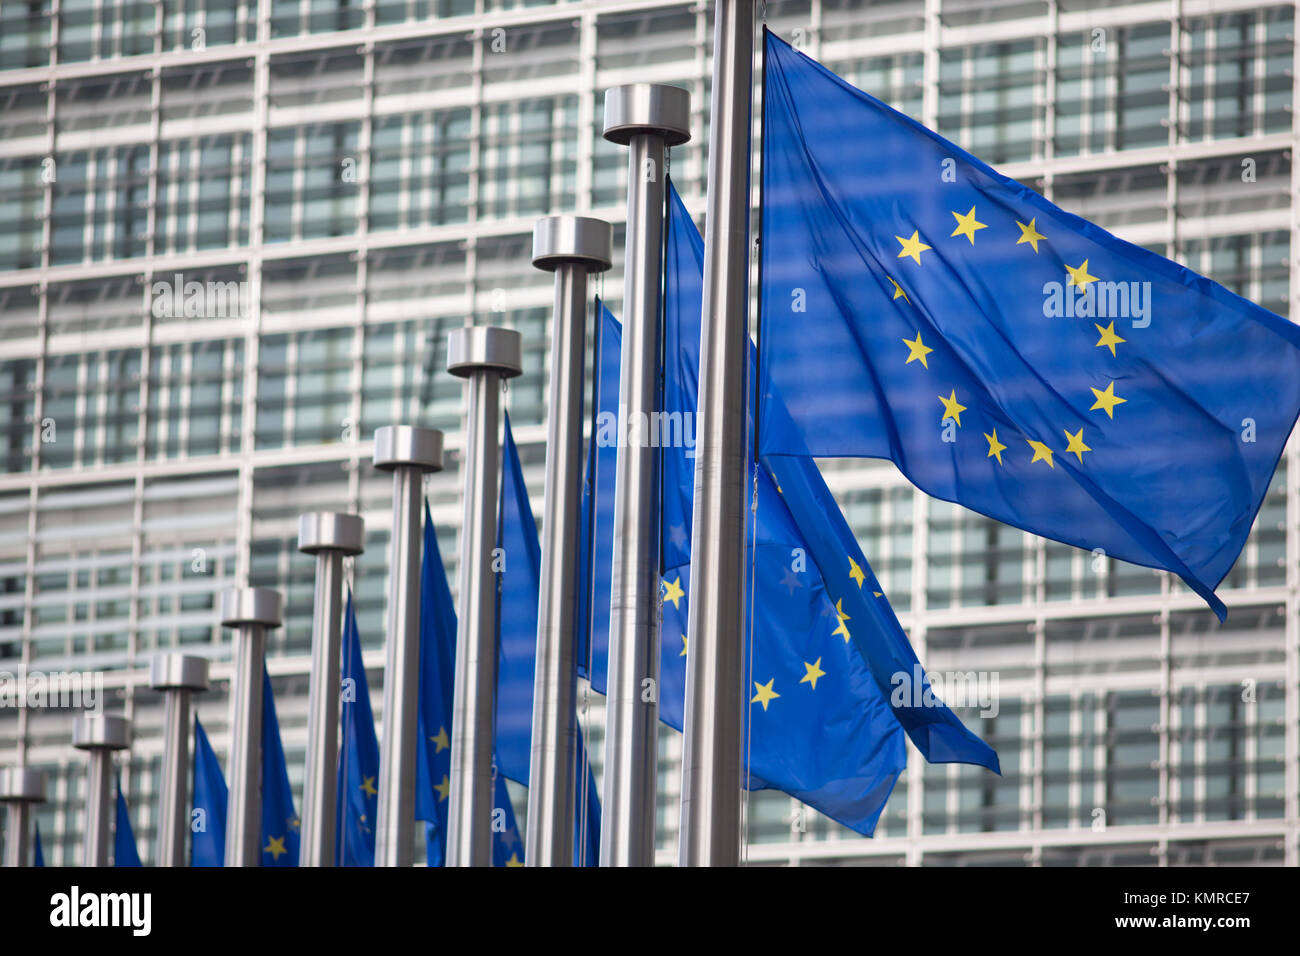 European Commission EU flags in Brussels - Stock Image